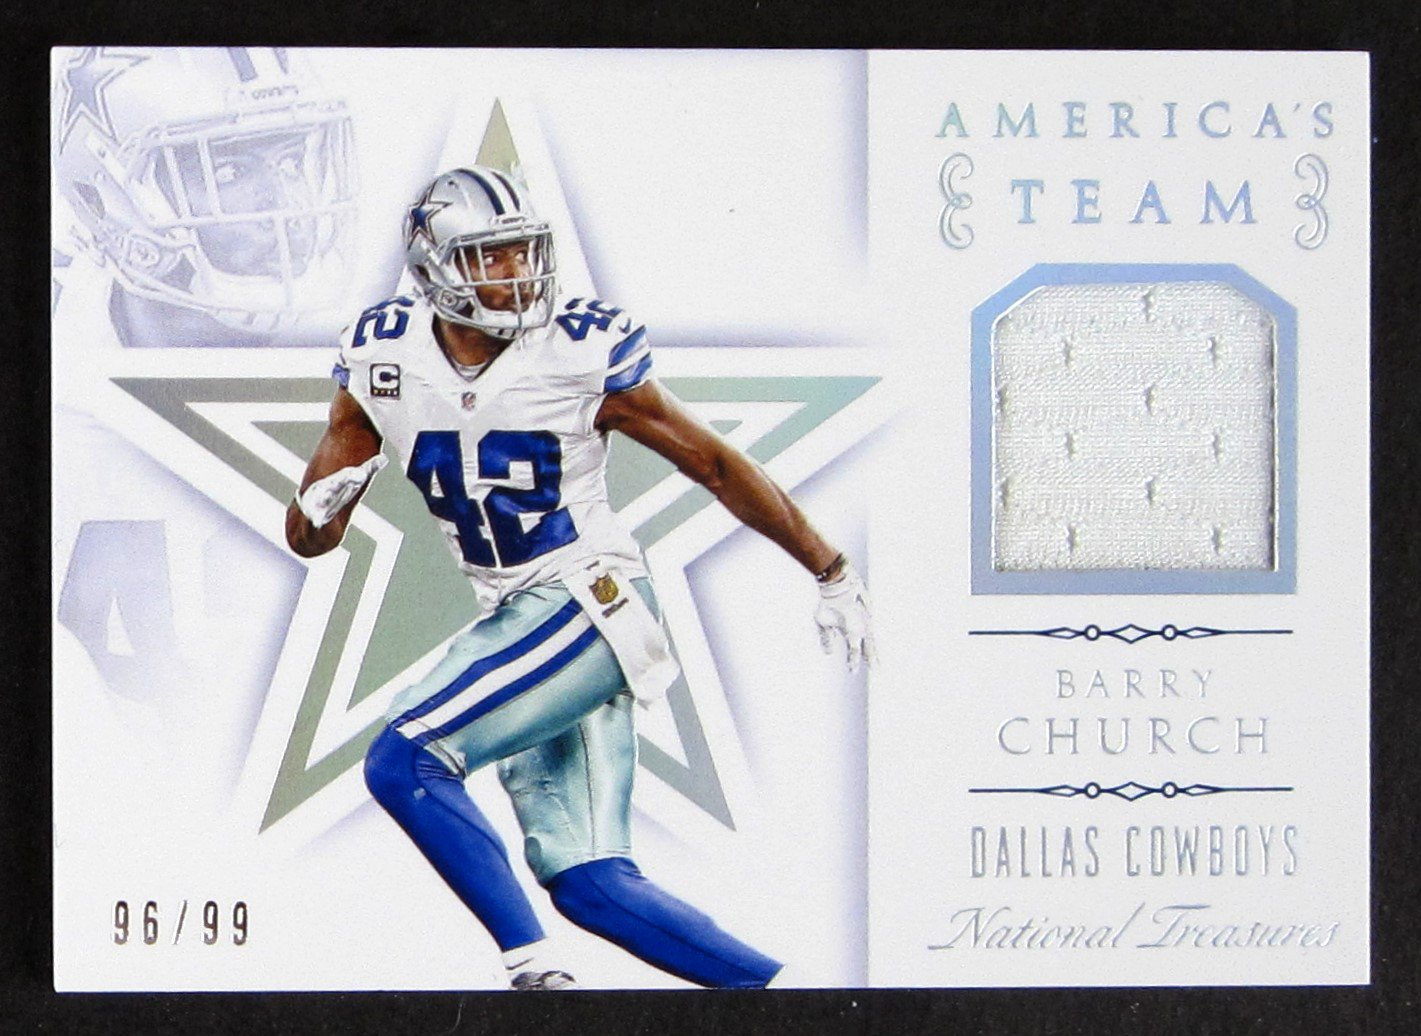 Barry Church 2015 National Treasures jersey card